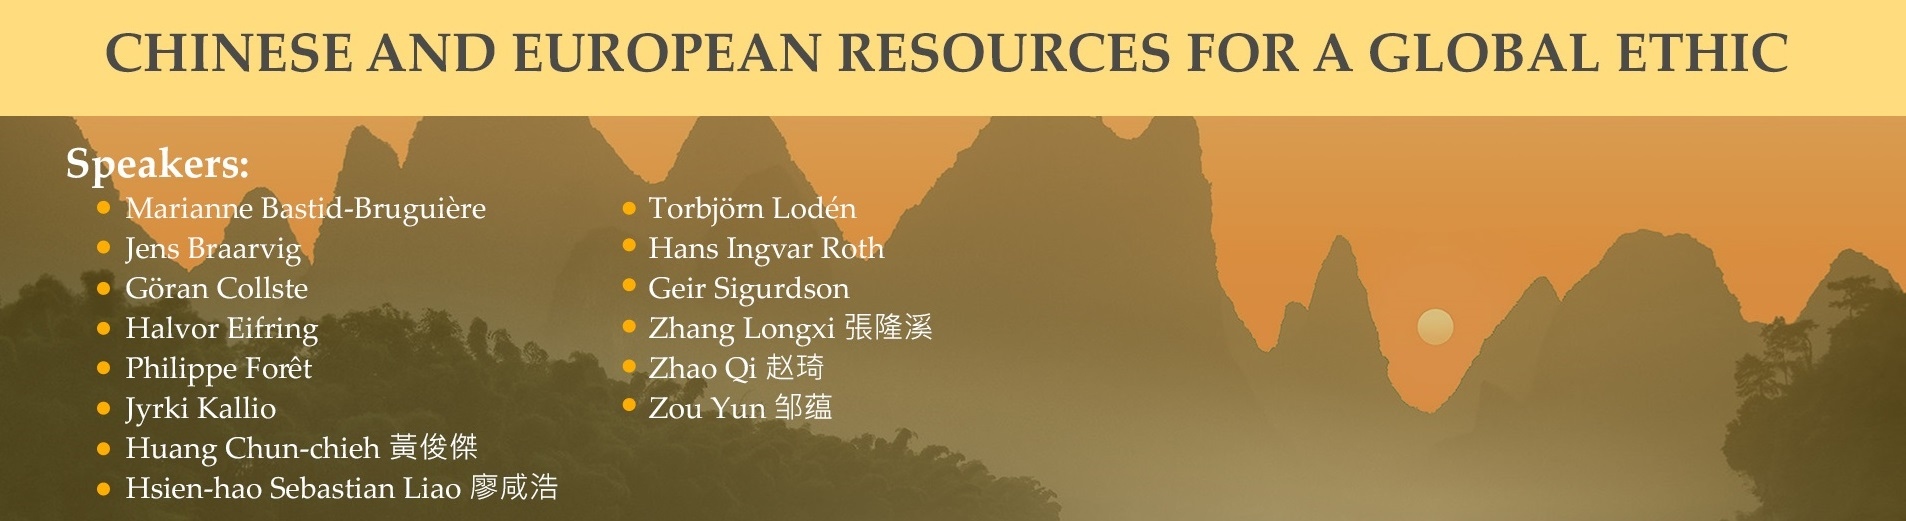 Chinese and European Resources for a Global Ethic http://www.cipsh.net/web/news-303.htm